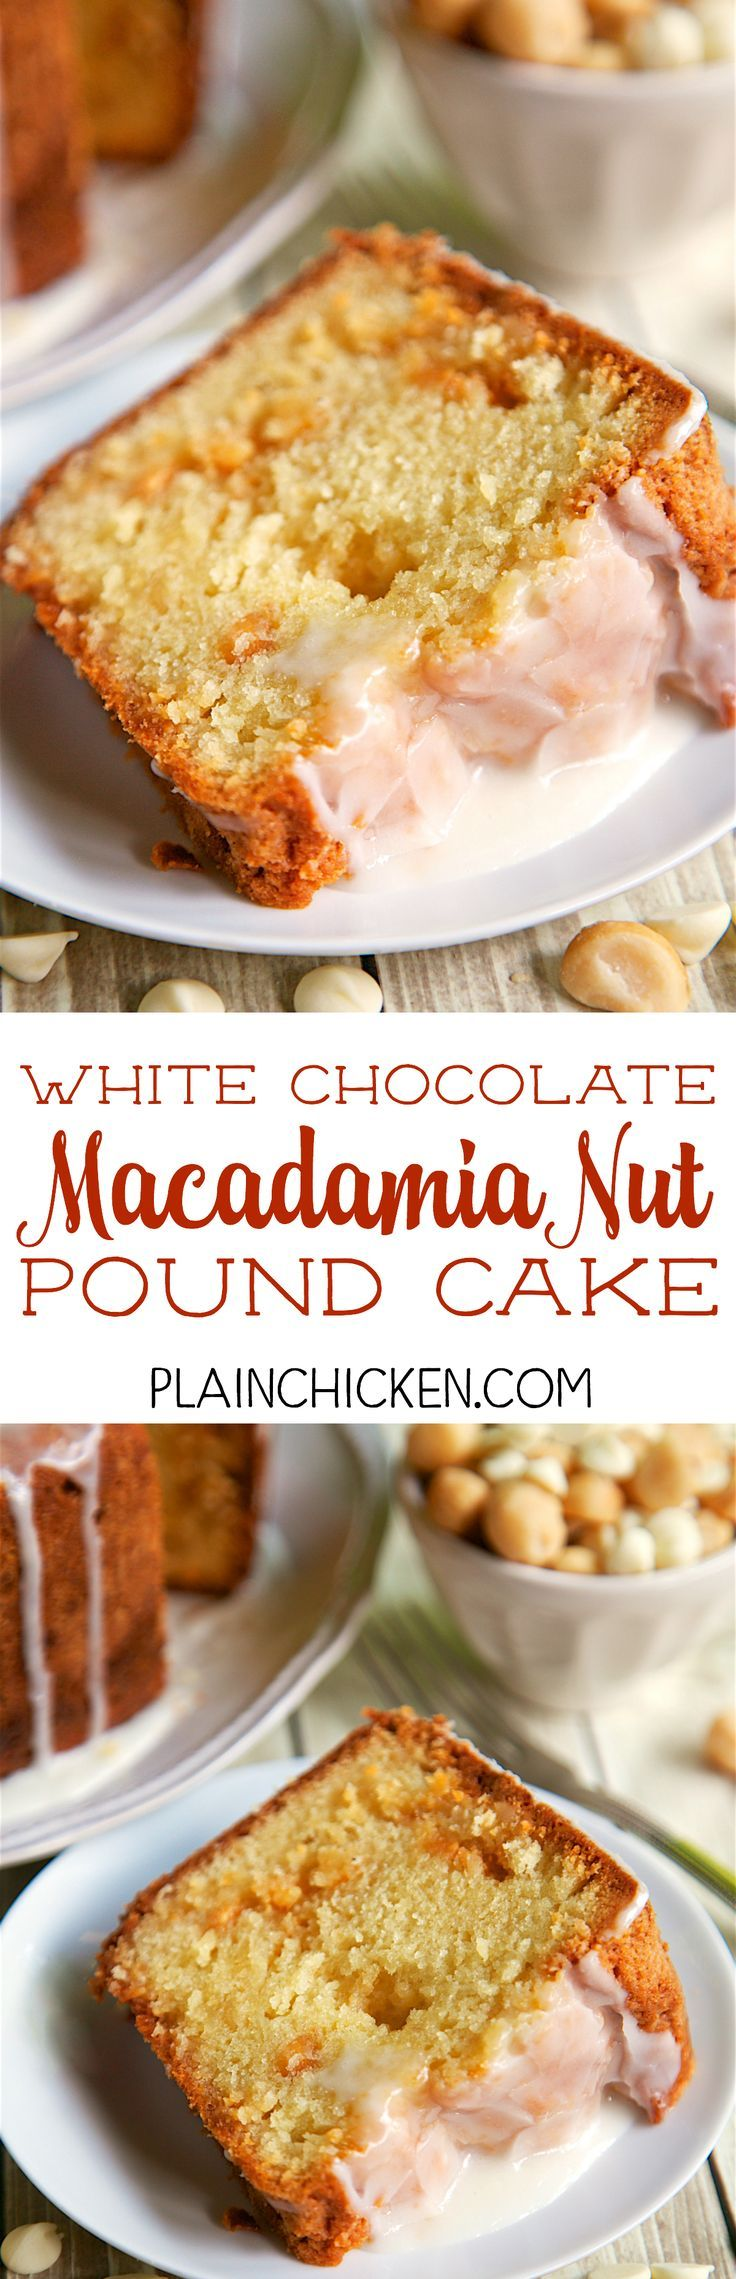 White Chocolate Macadamia Nut Pound Cake - DELICIOUS! An easy from scratch pound cake. Flour, sugar, butter, eggs, vanilla, white chocolate pudding, macadamia nuts, pineapple juice. Cake is drizzled with a quick pineapple glaze. This is CRAZY good!!! This didn't last long in our house! Great for a potluck or homemade gift.